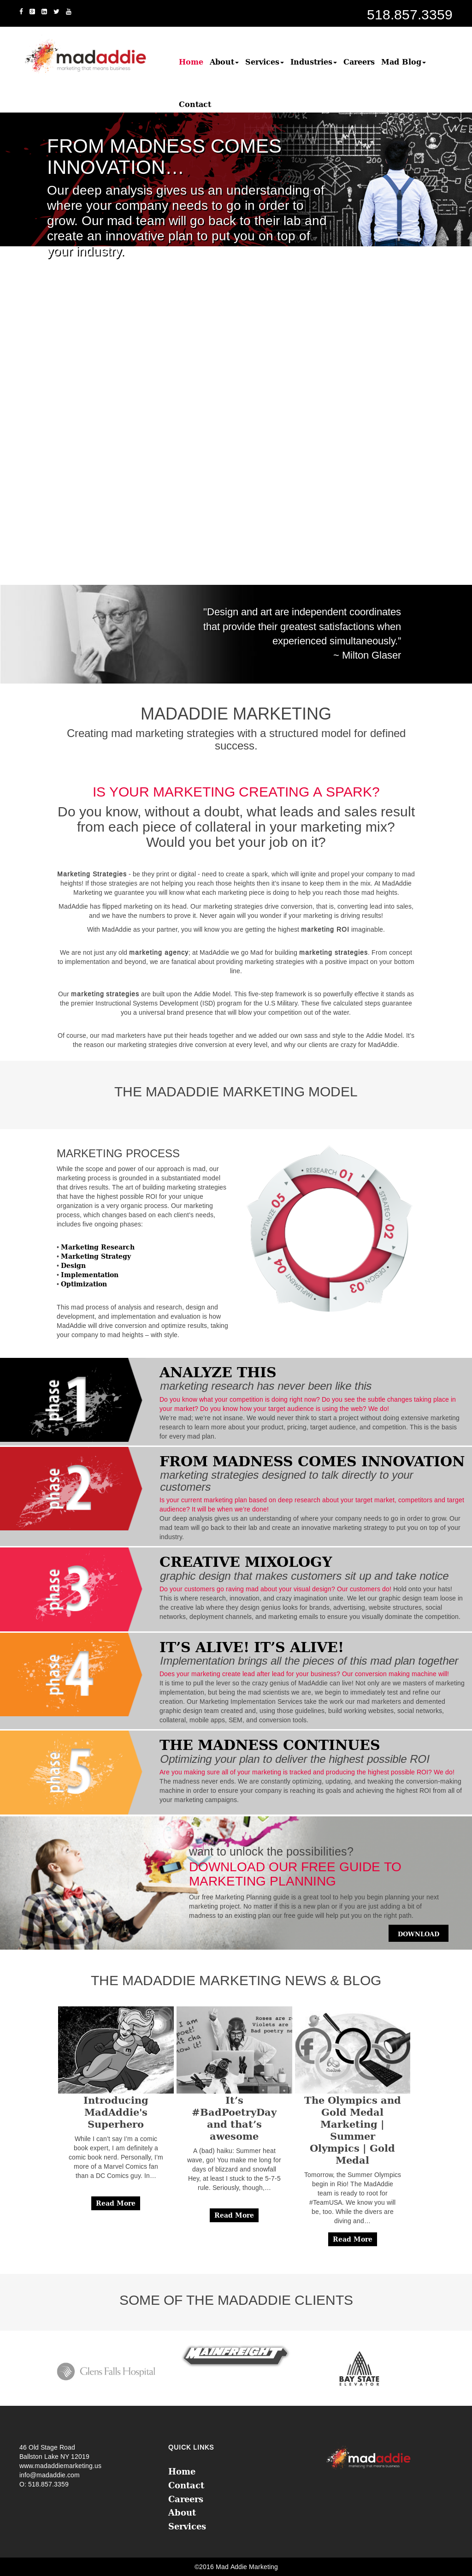 MadAddie Marketing Competitors, Revenue and Employees - Owler